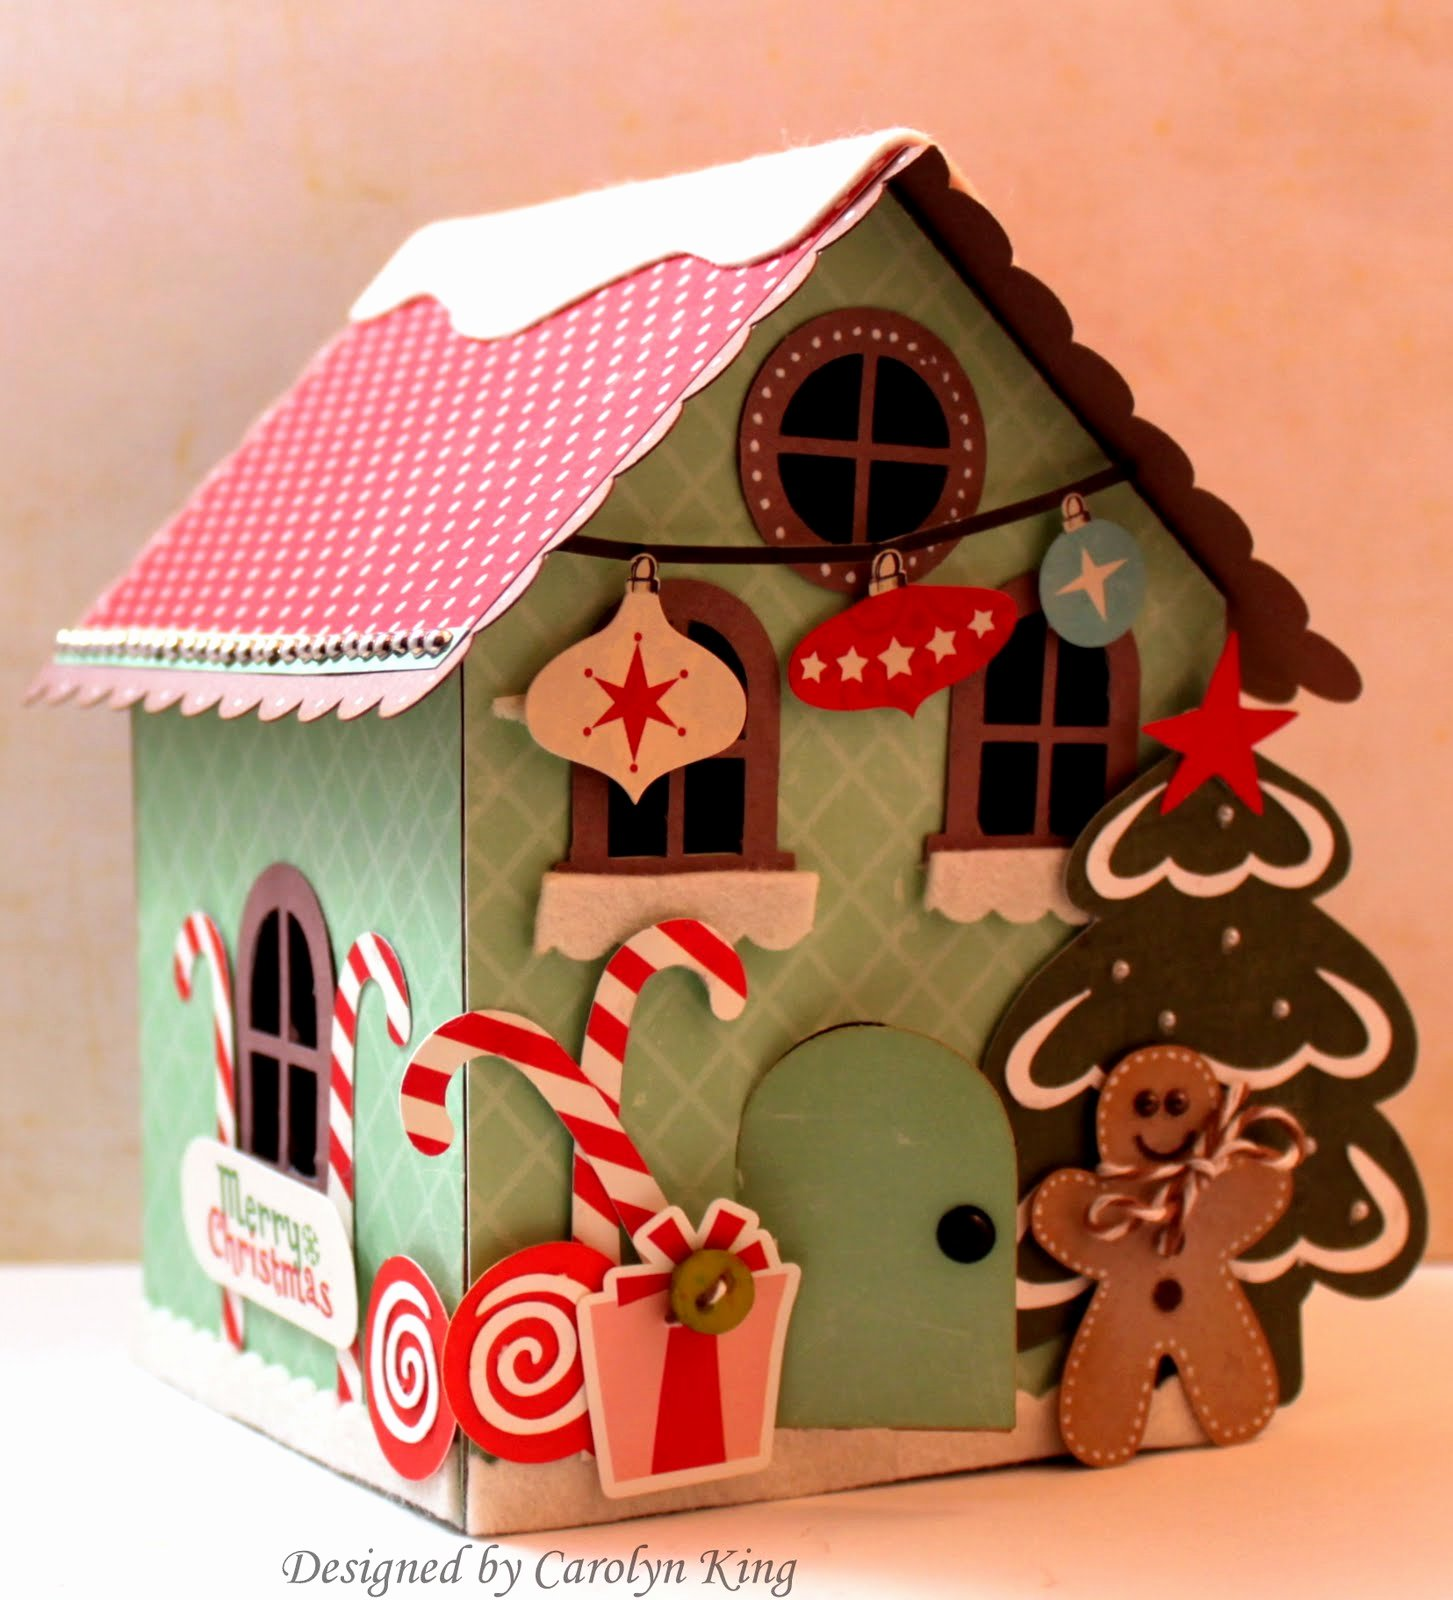 Cardboard Gingerbread House Elegant My Blog Gingerbread House